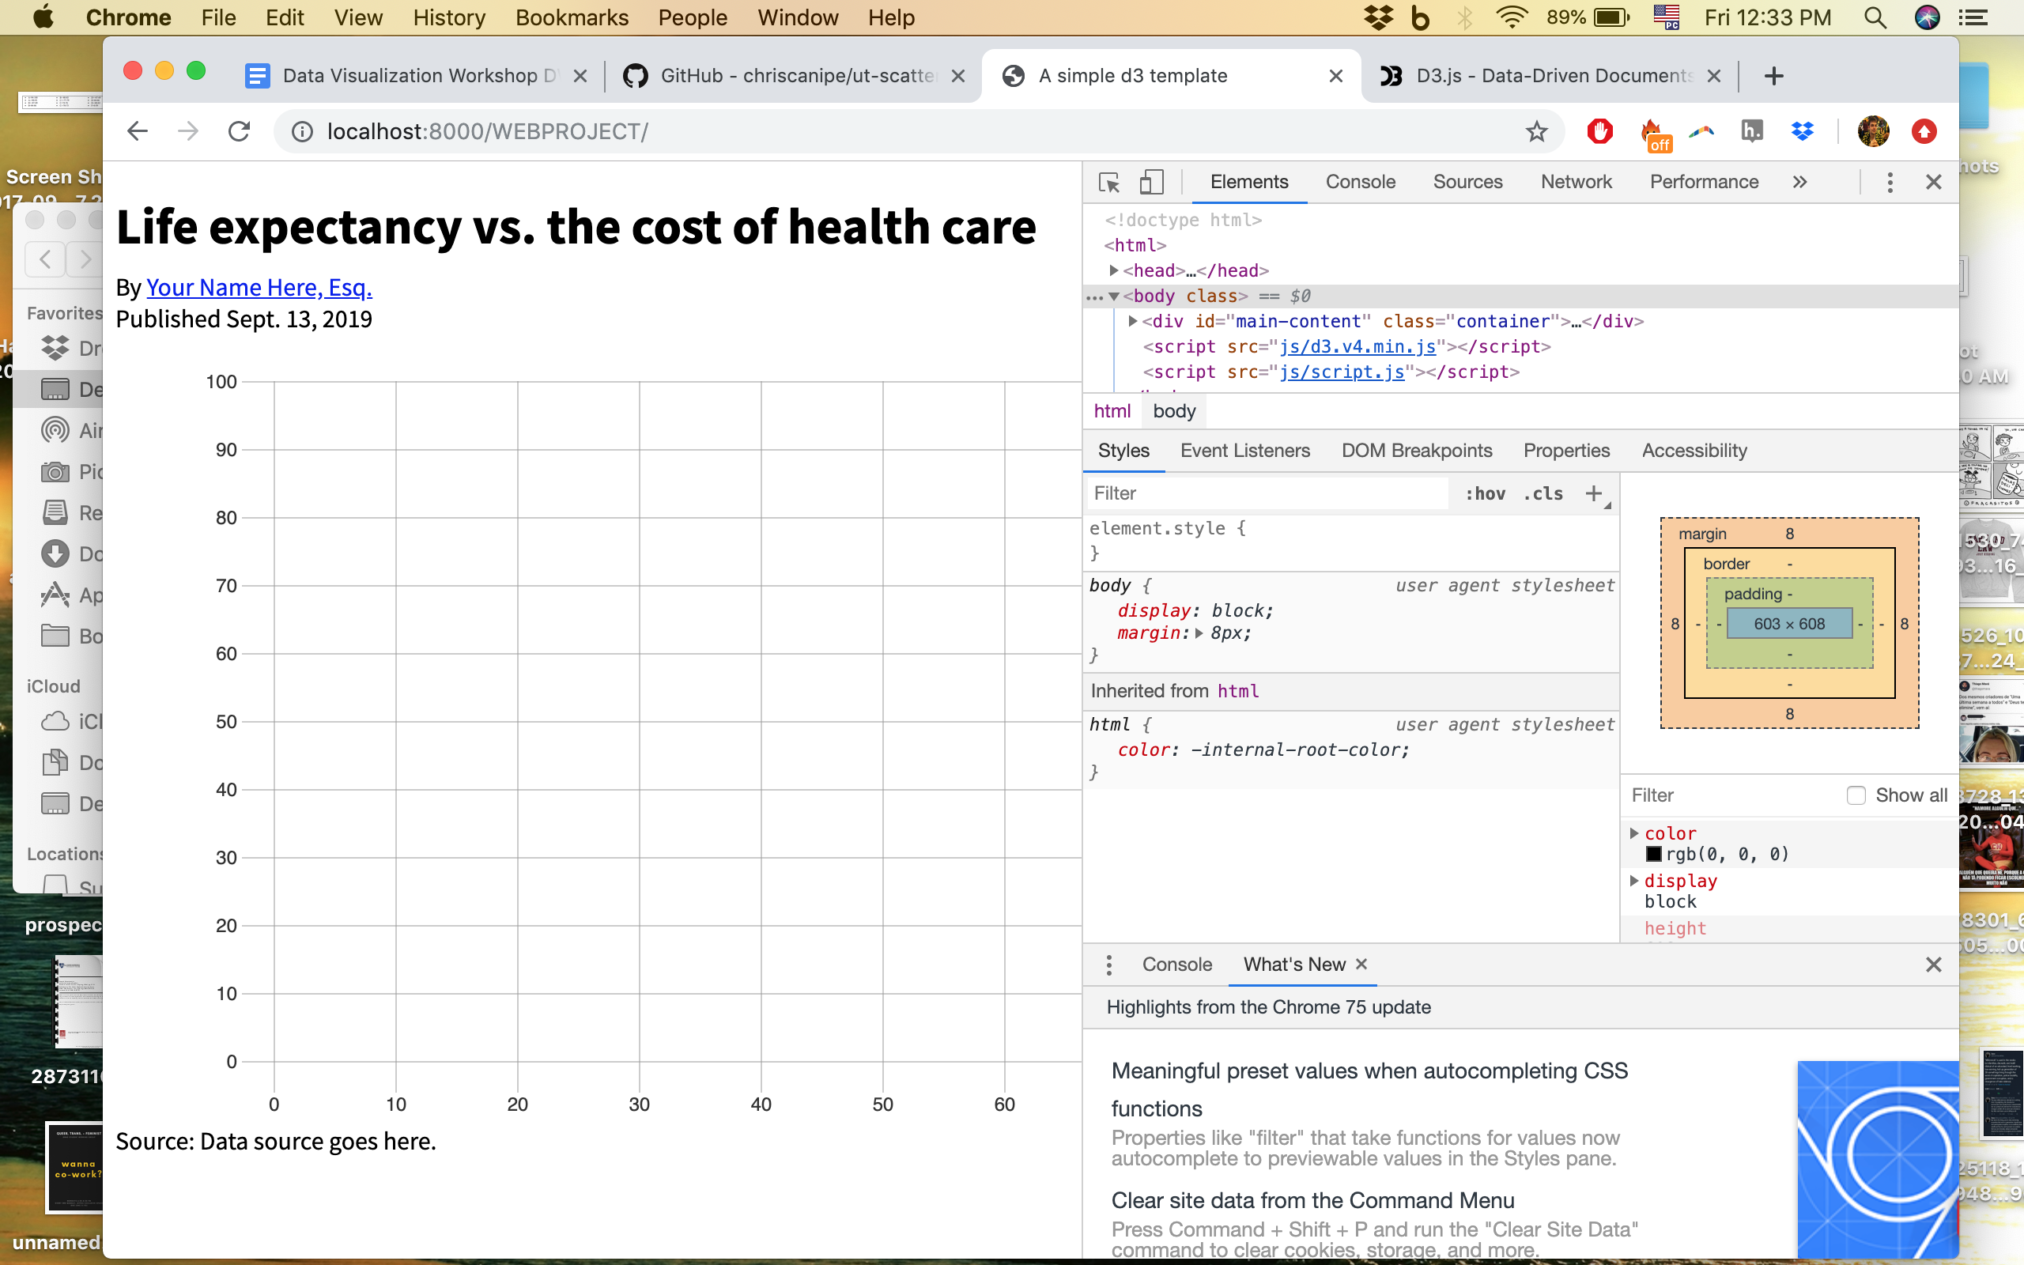 An empty scatterplot of life expectancy versus the cost of healthcare